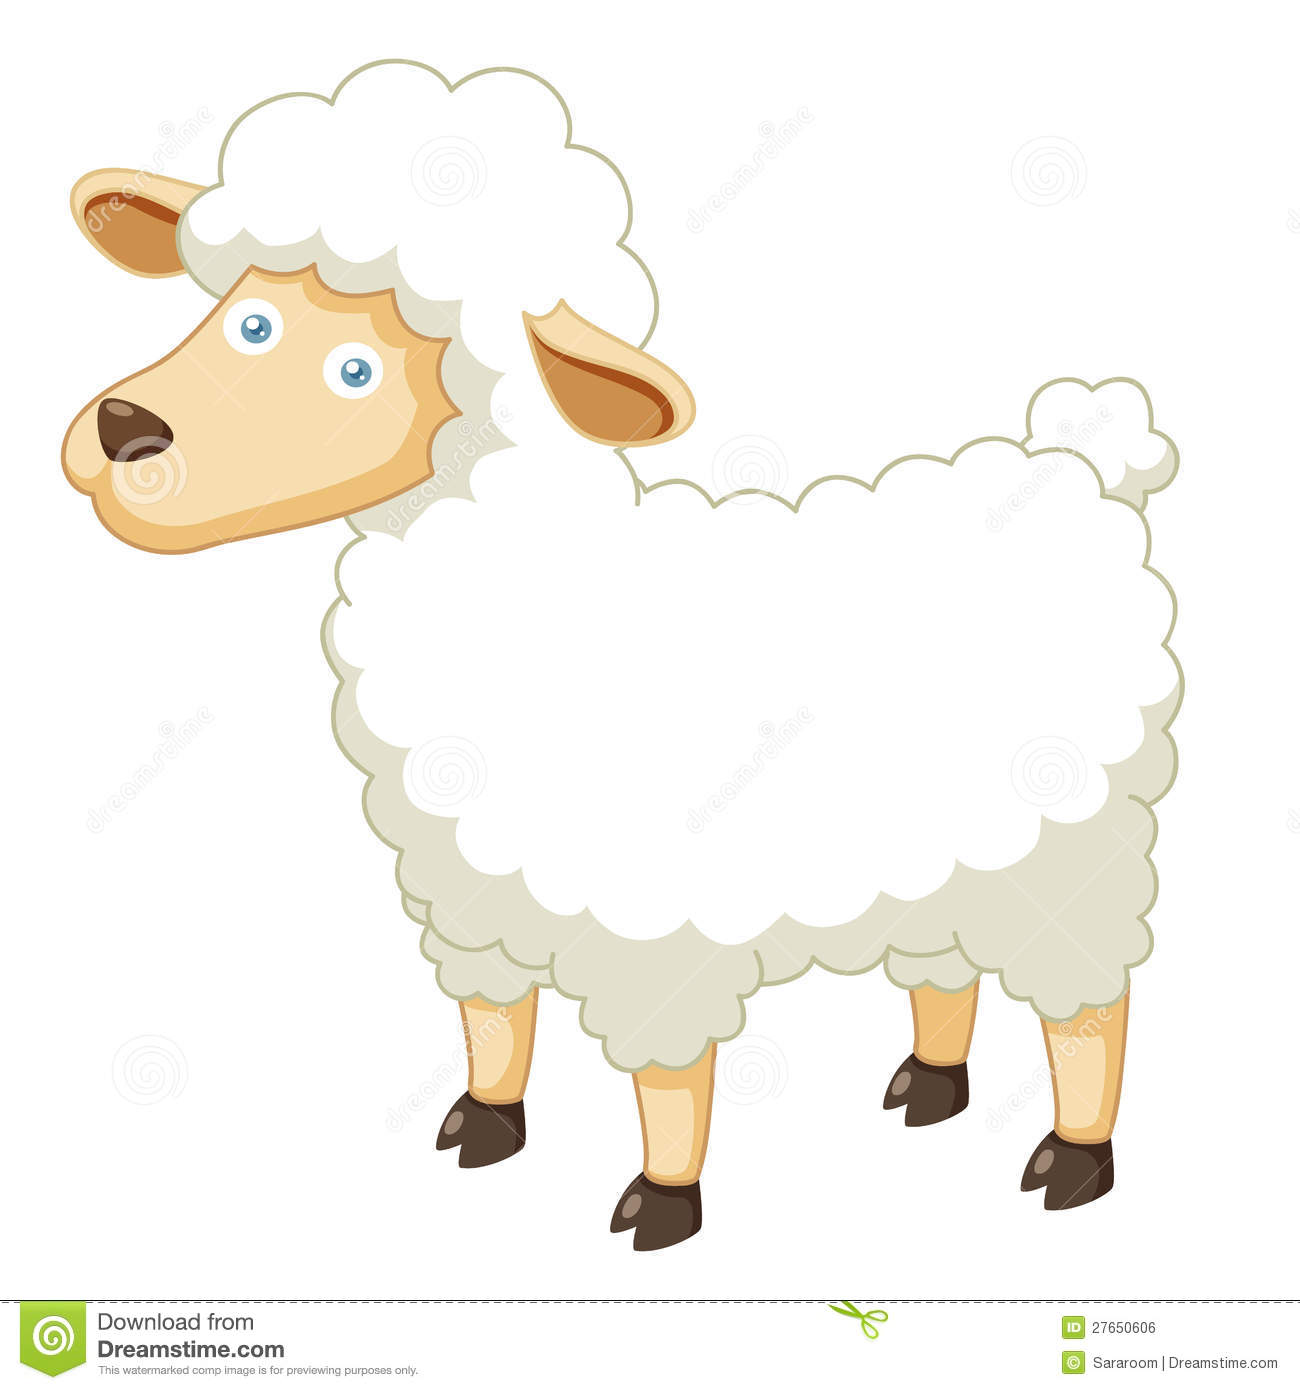 Moutons de dessin anim illustration de vecteur - Mouton en dessin ...